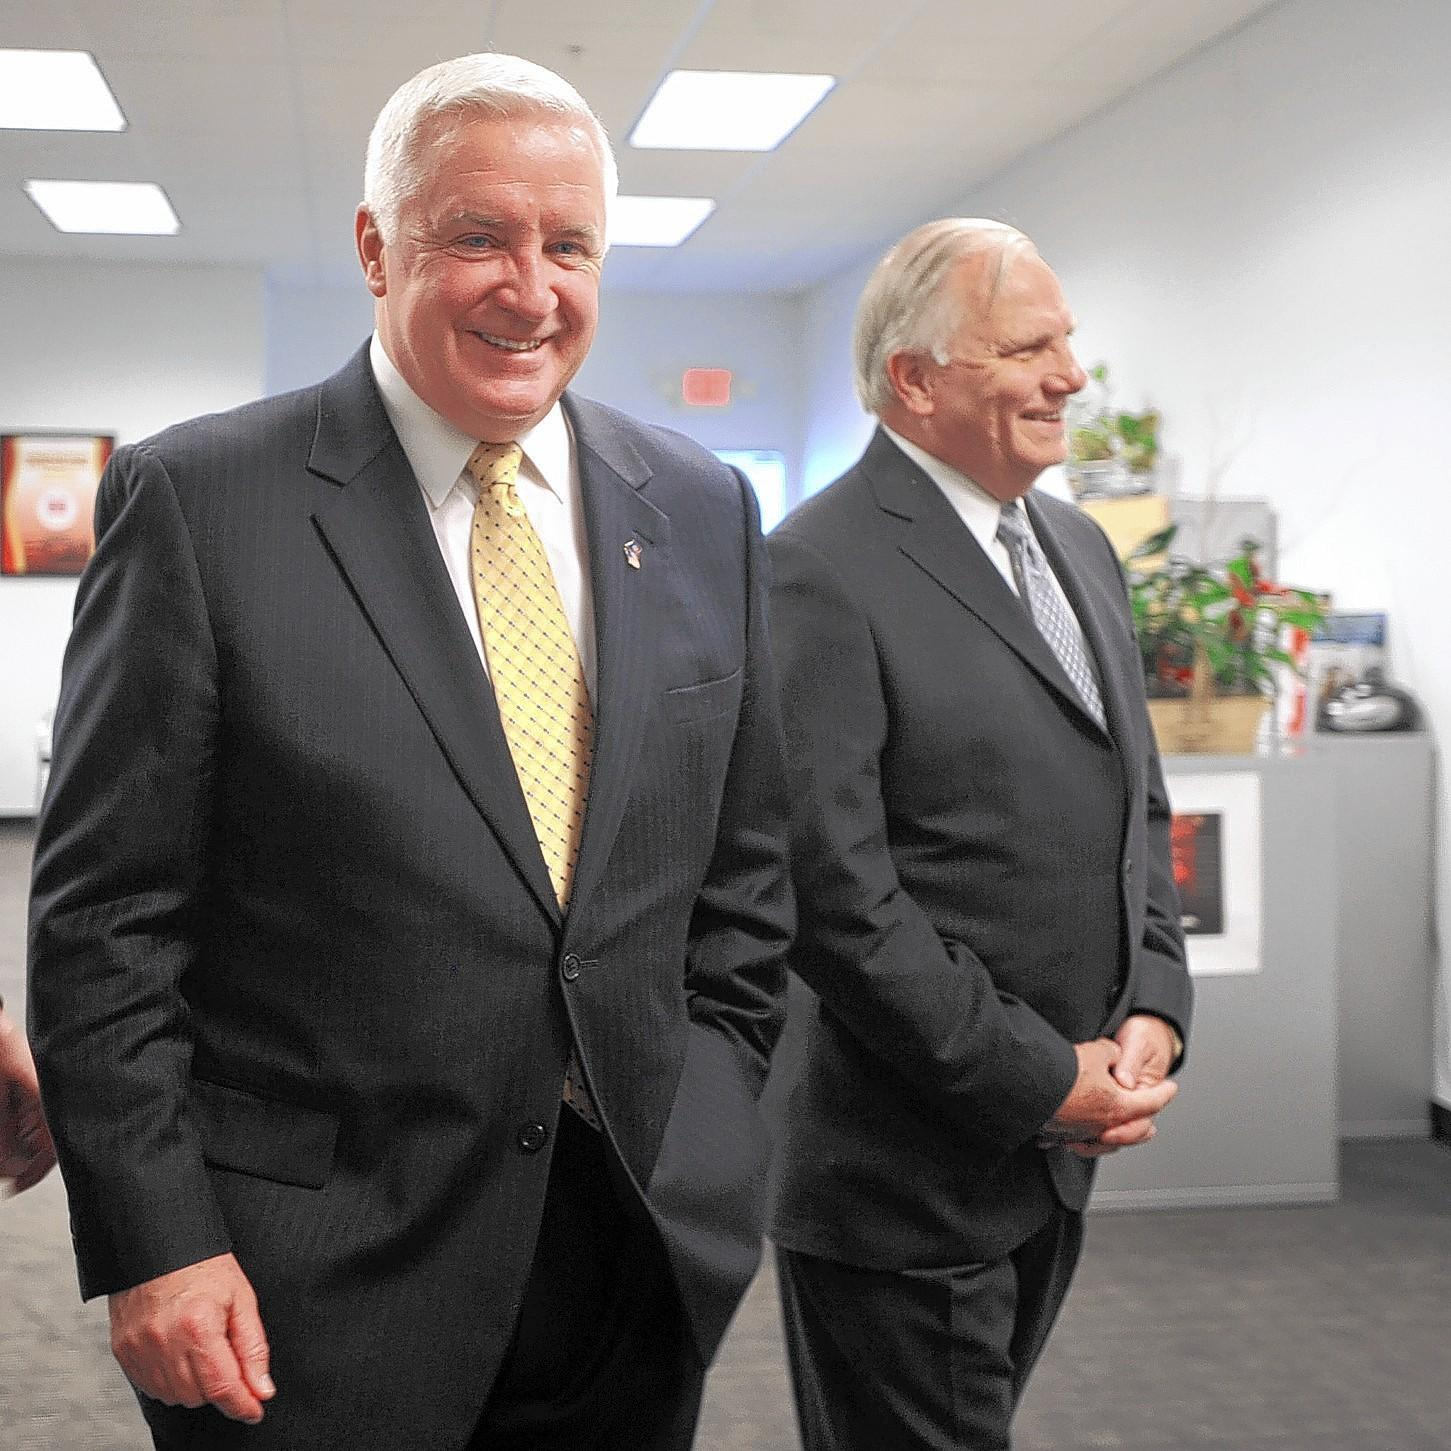 State Sen. Bob Mensch, R-Montgomery (right), shown with Gov. Tom Corbett during a 2012 visit to Palmer Township, has a bill to force everyone to use alternative electricity suppliers.